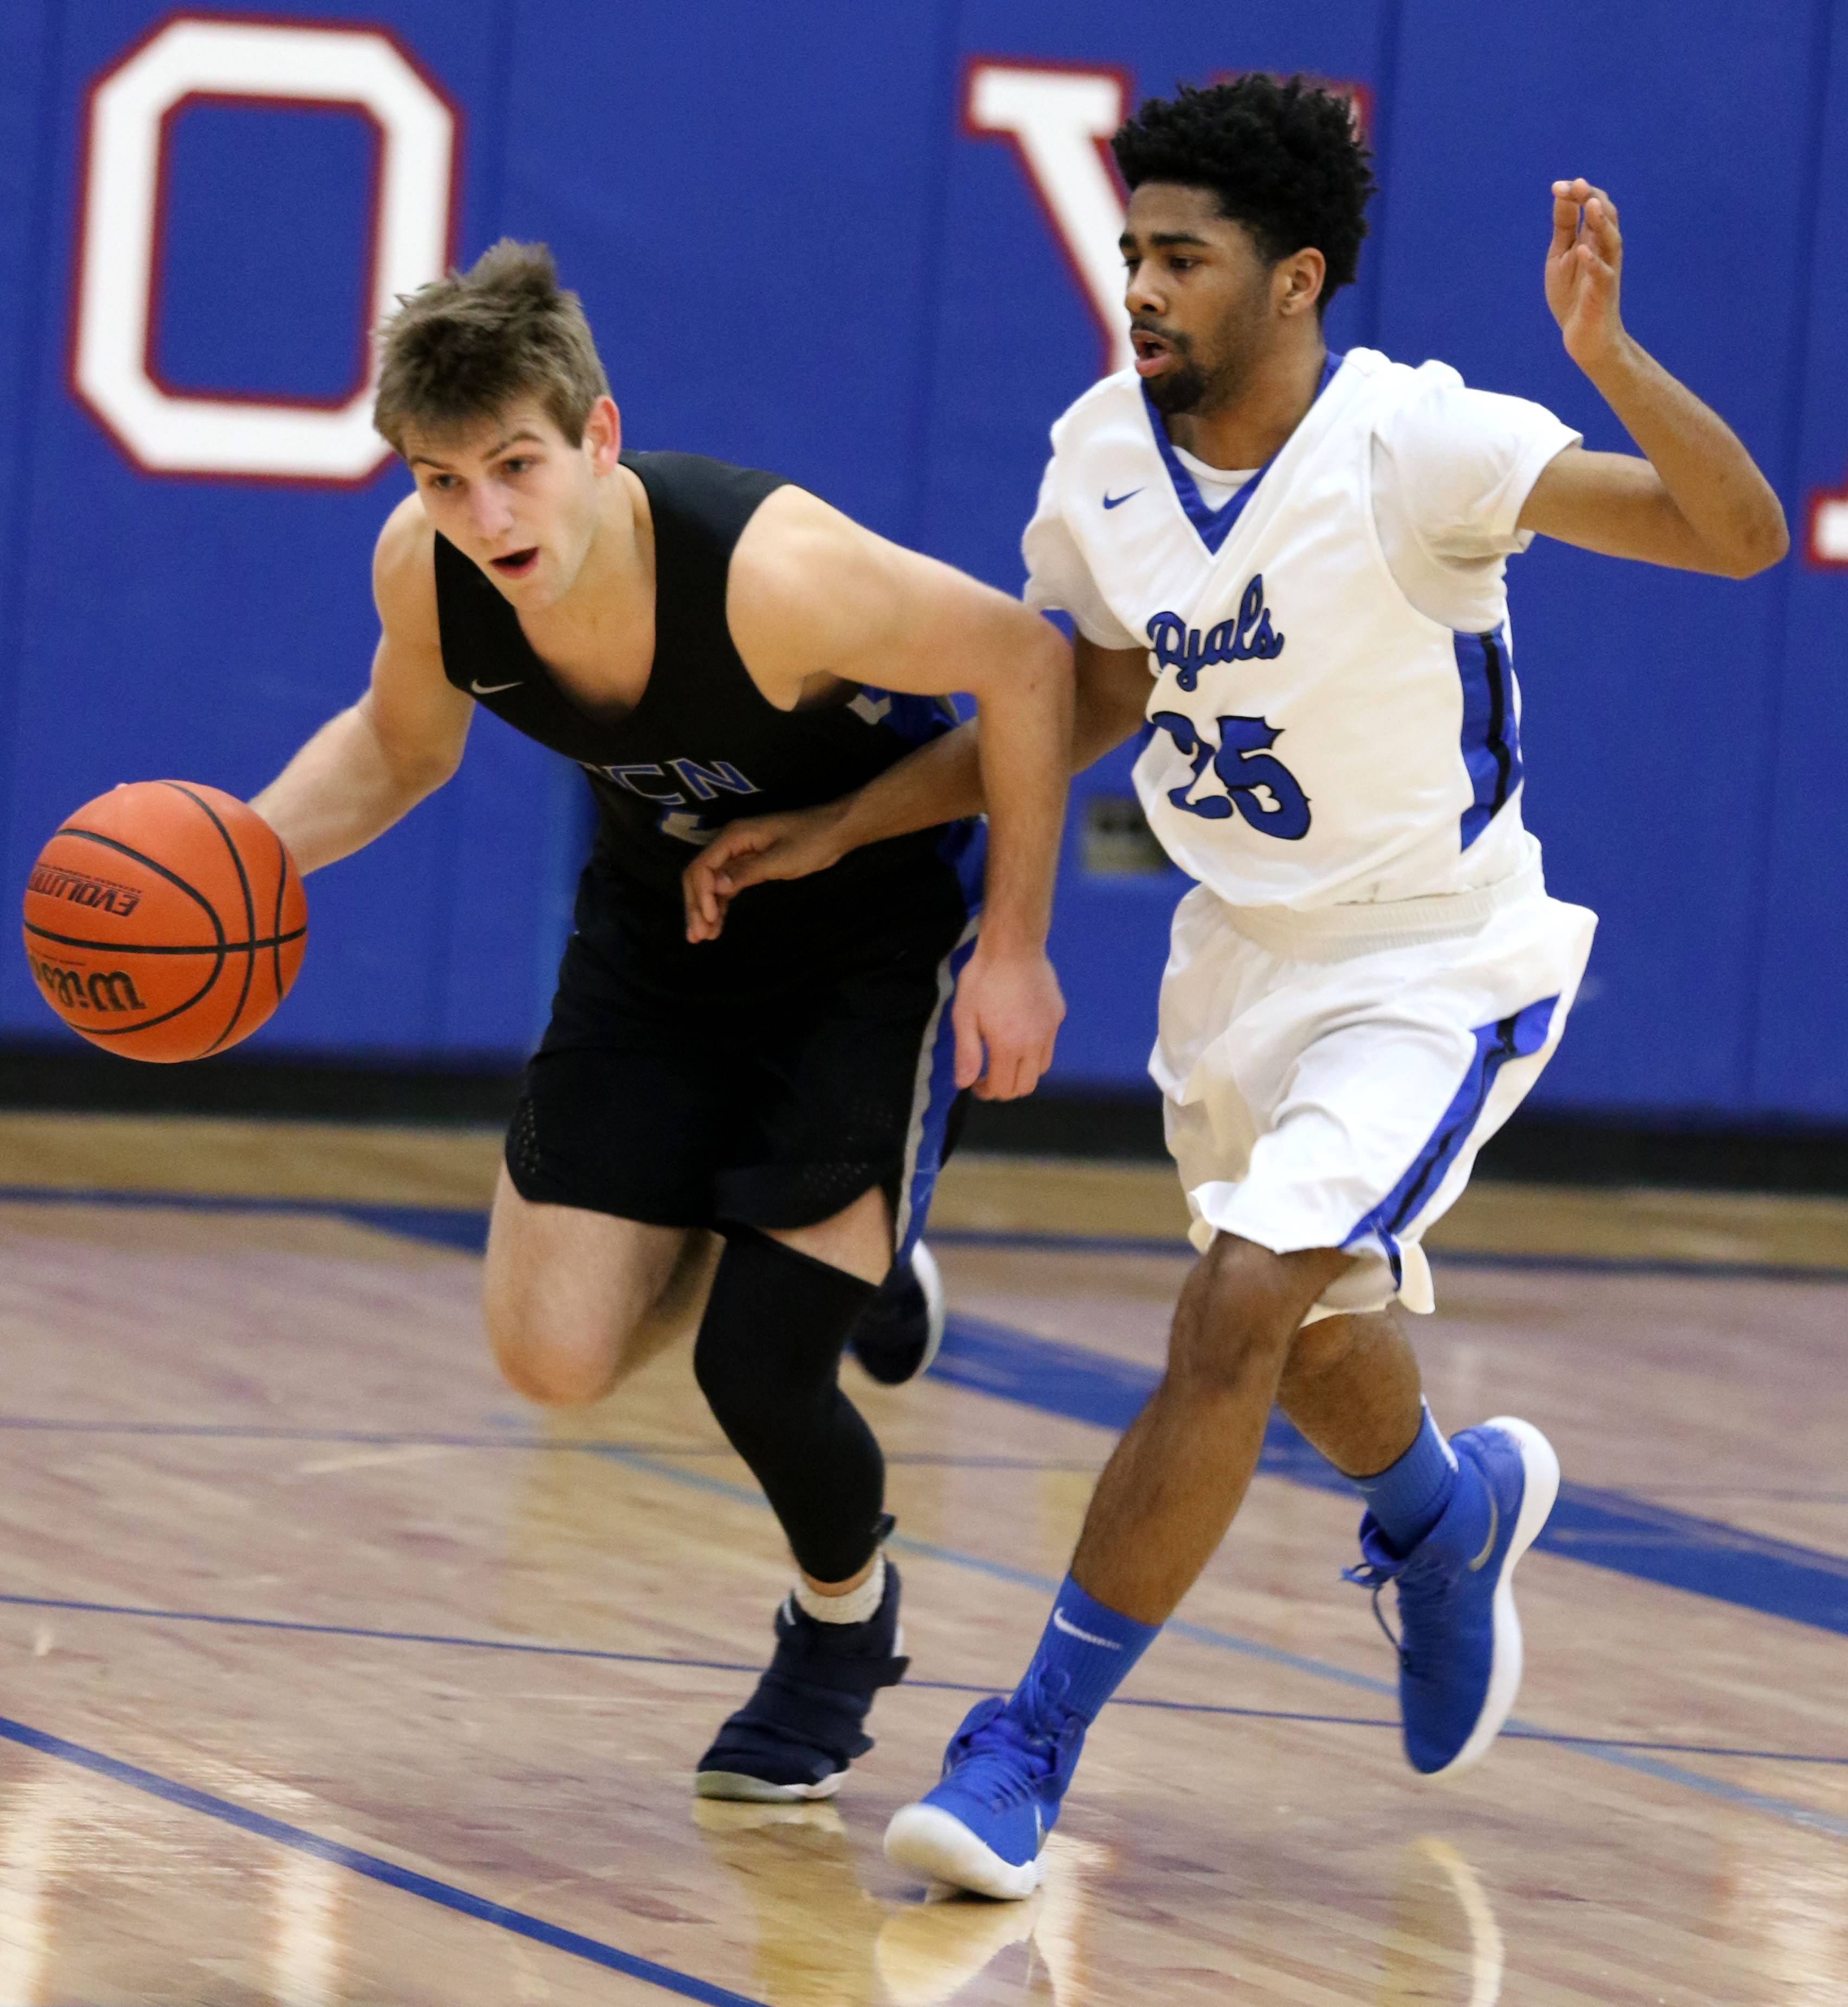 St. Charles North's Zachary Ludwig, left, works the ball past Larkin's Christopher Rose during a varsity boys basketball game at Larkin High School in Elgin Friday night.